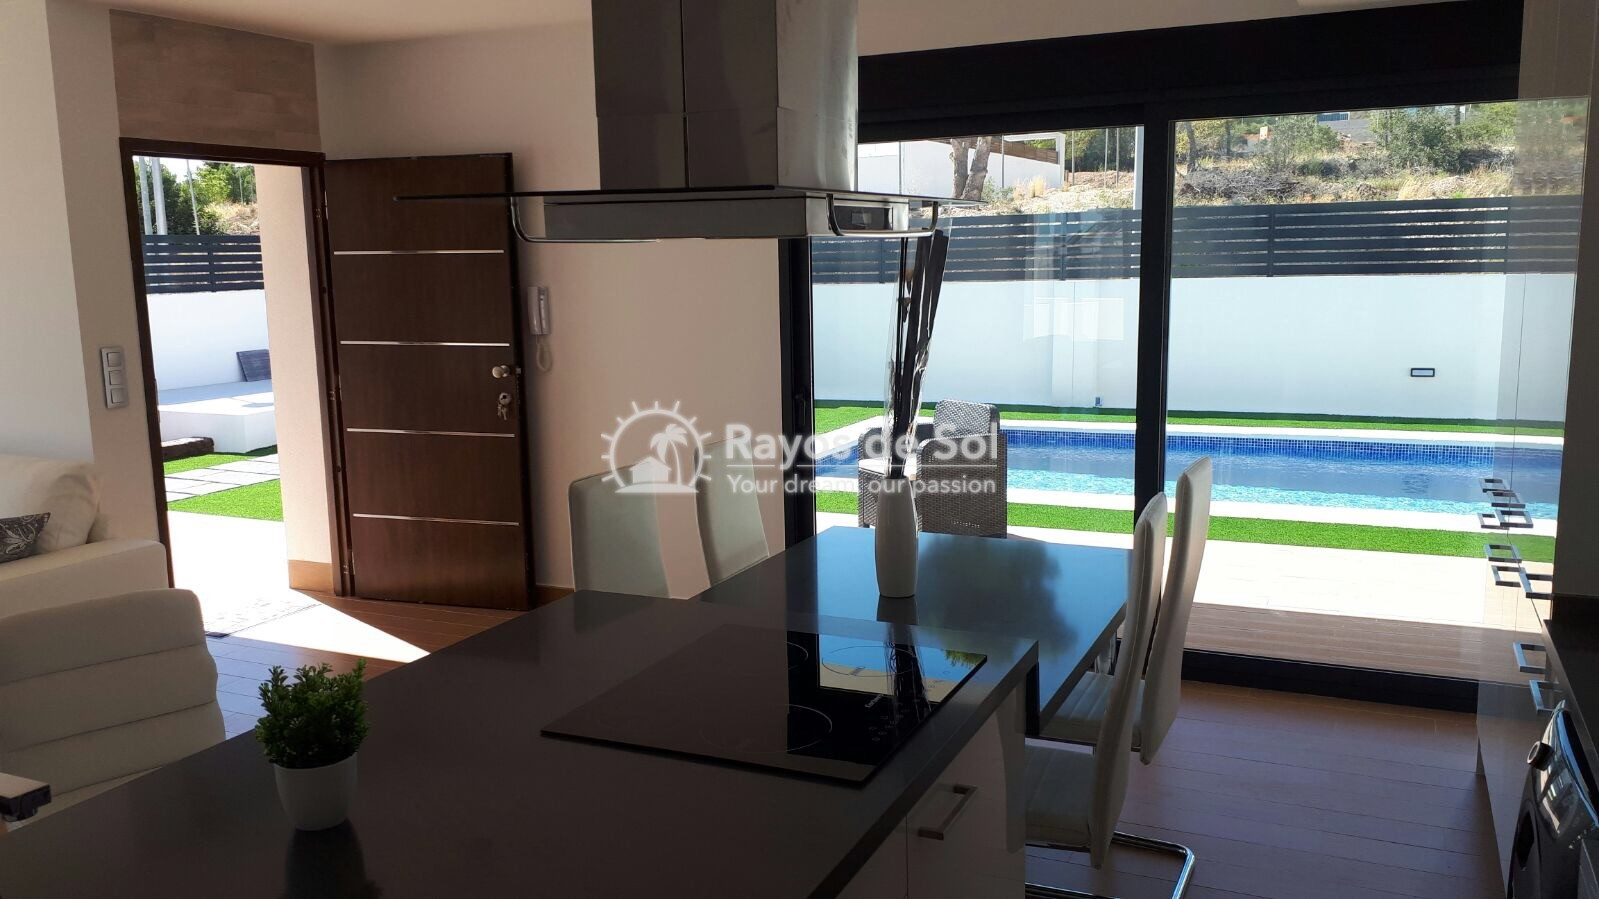 Semidetached single storey villa  in Polop, Costa Blanca (POWOBV) - 9